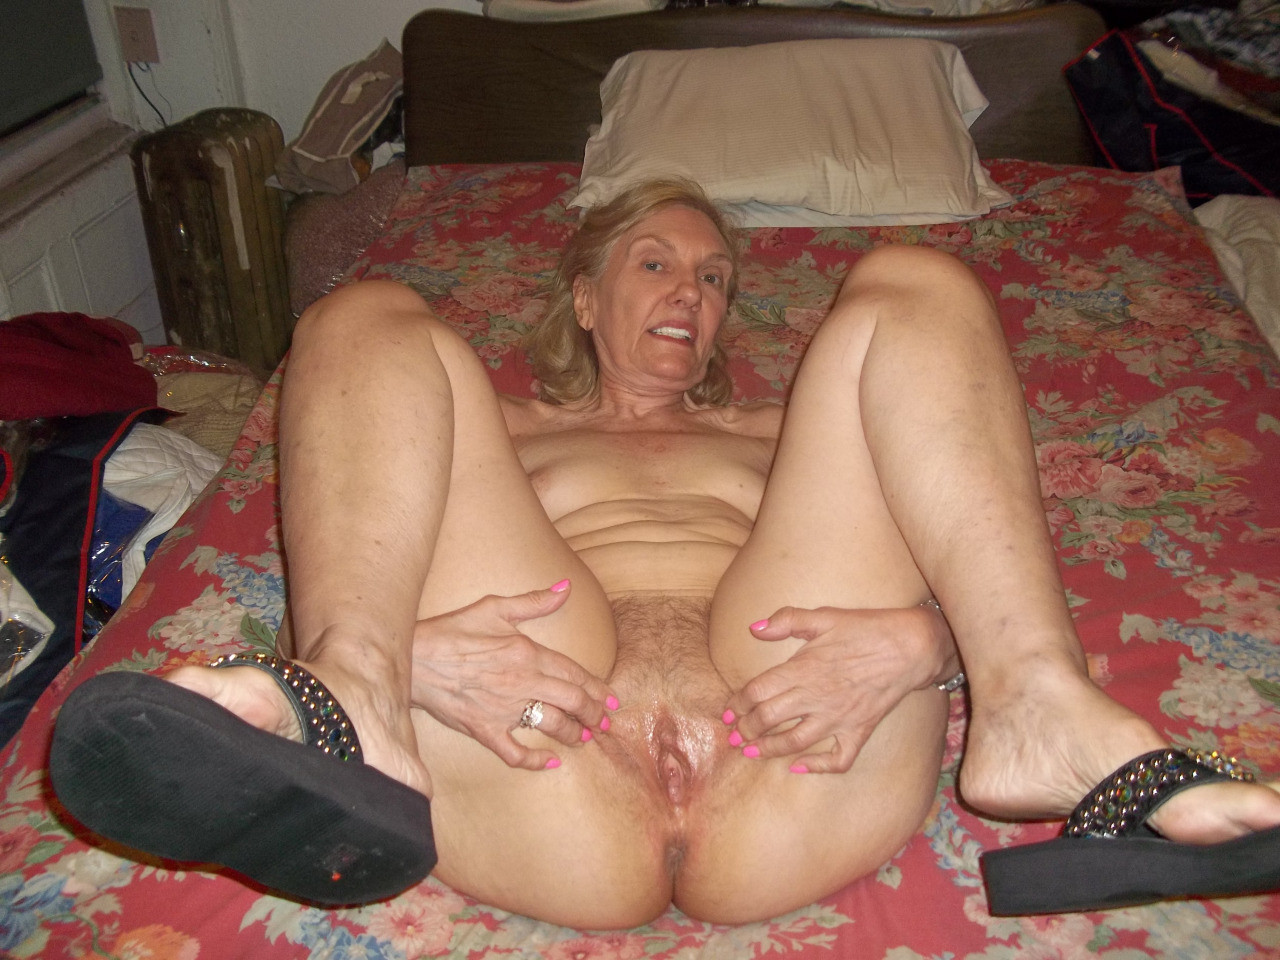 Old lady porn photos, sexy babes big ass naked